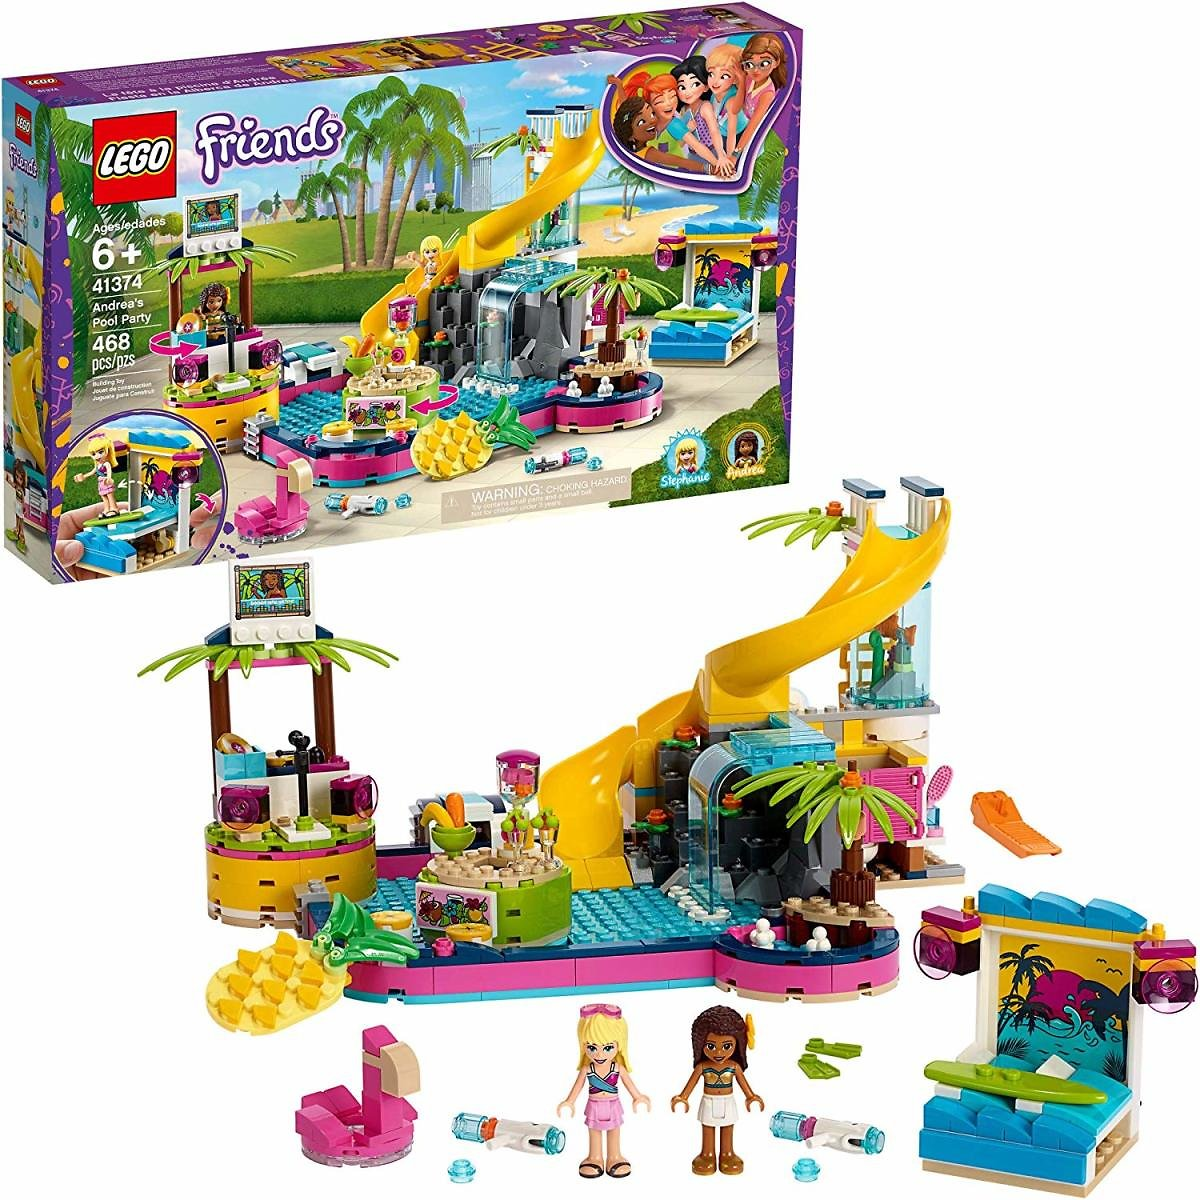 LEGO Friends Andreas Pool Party 41374 Building Set